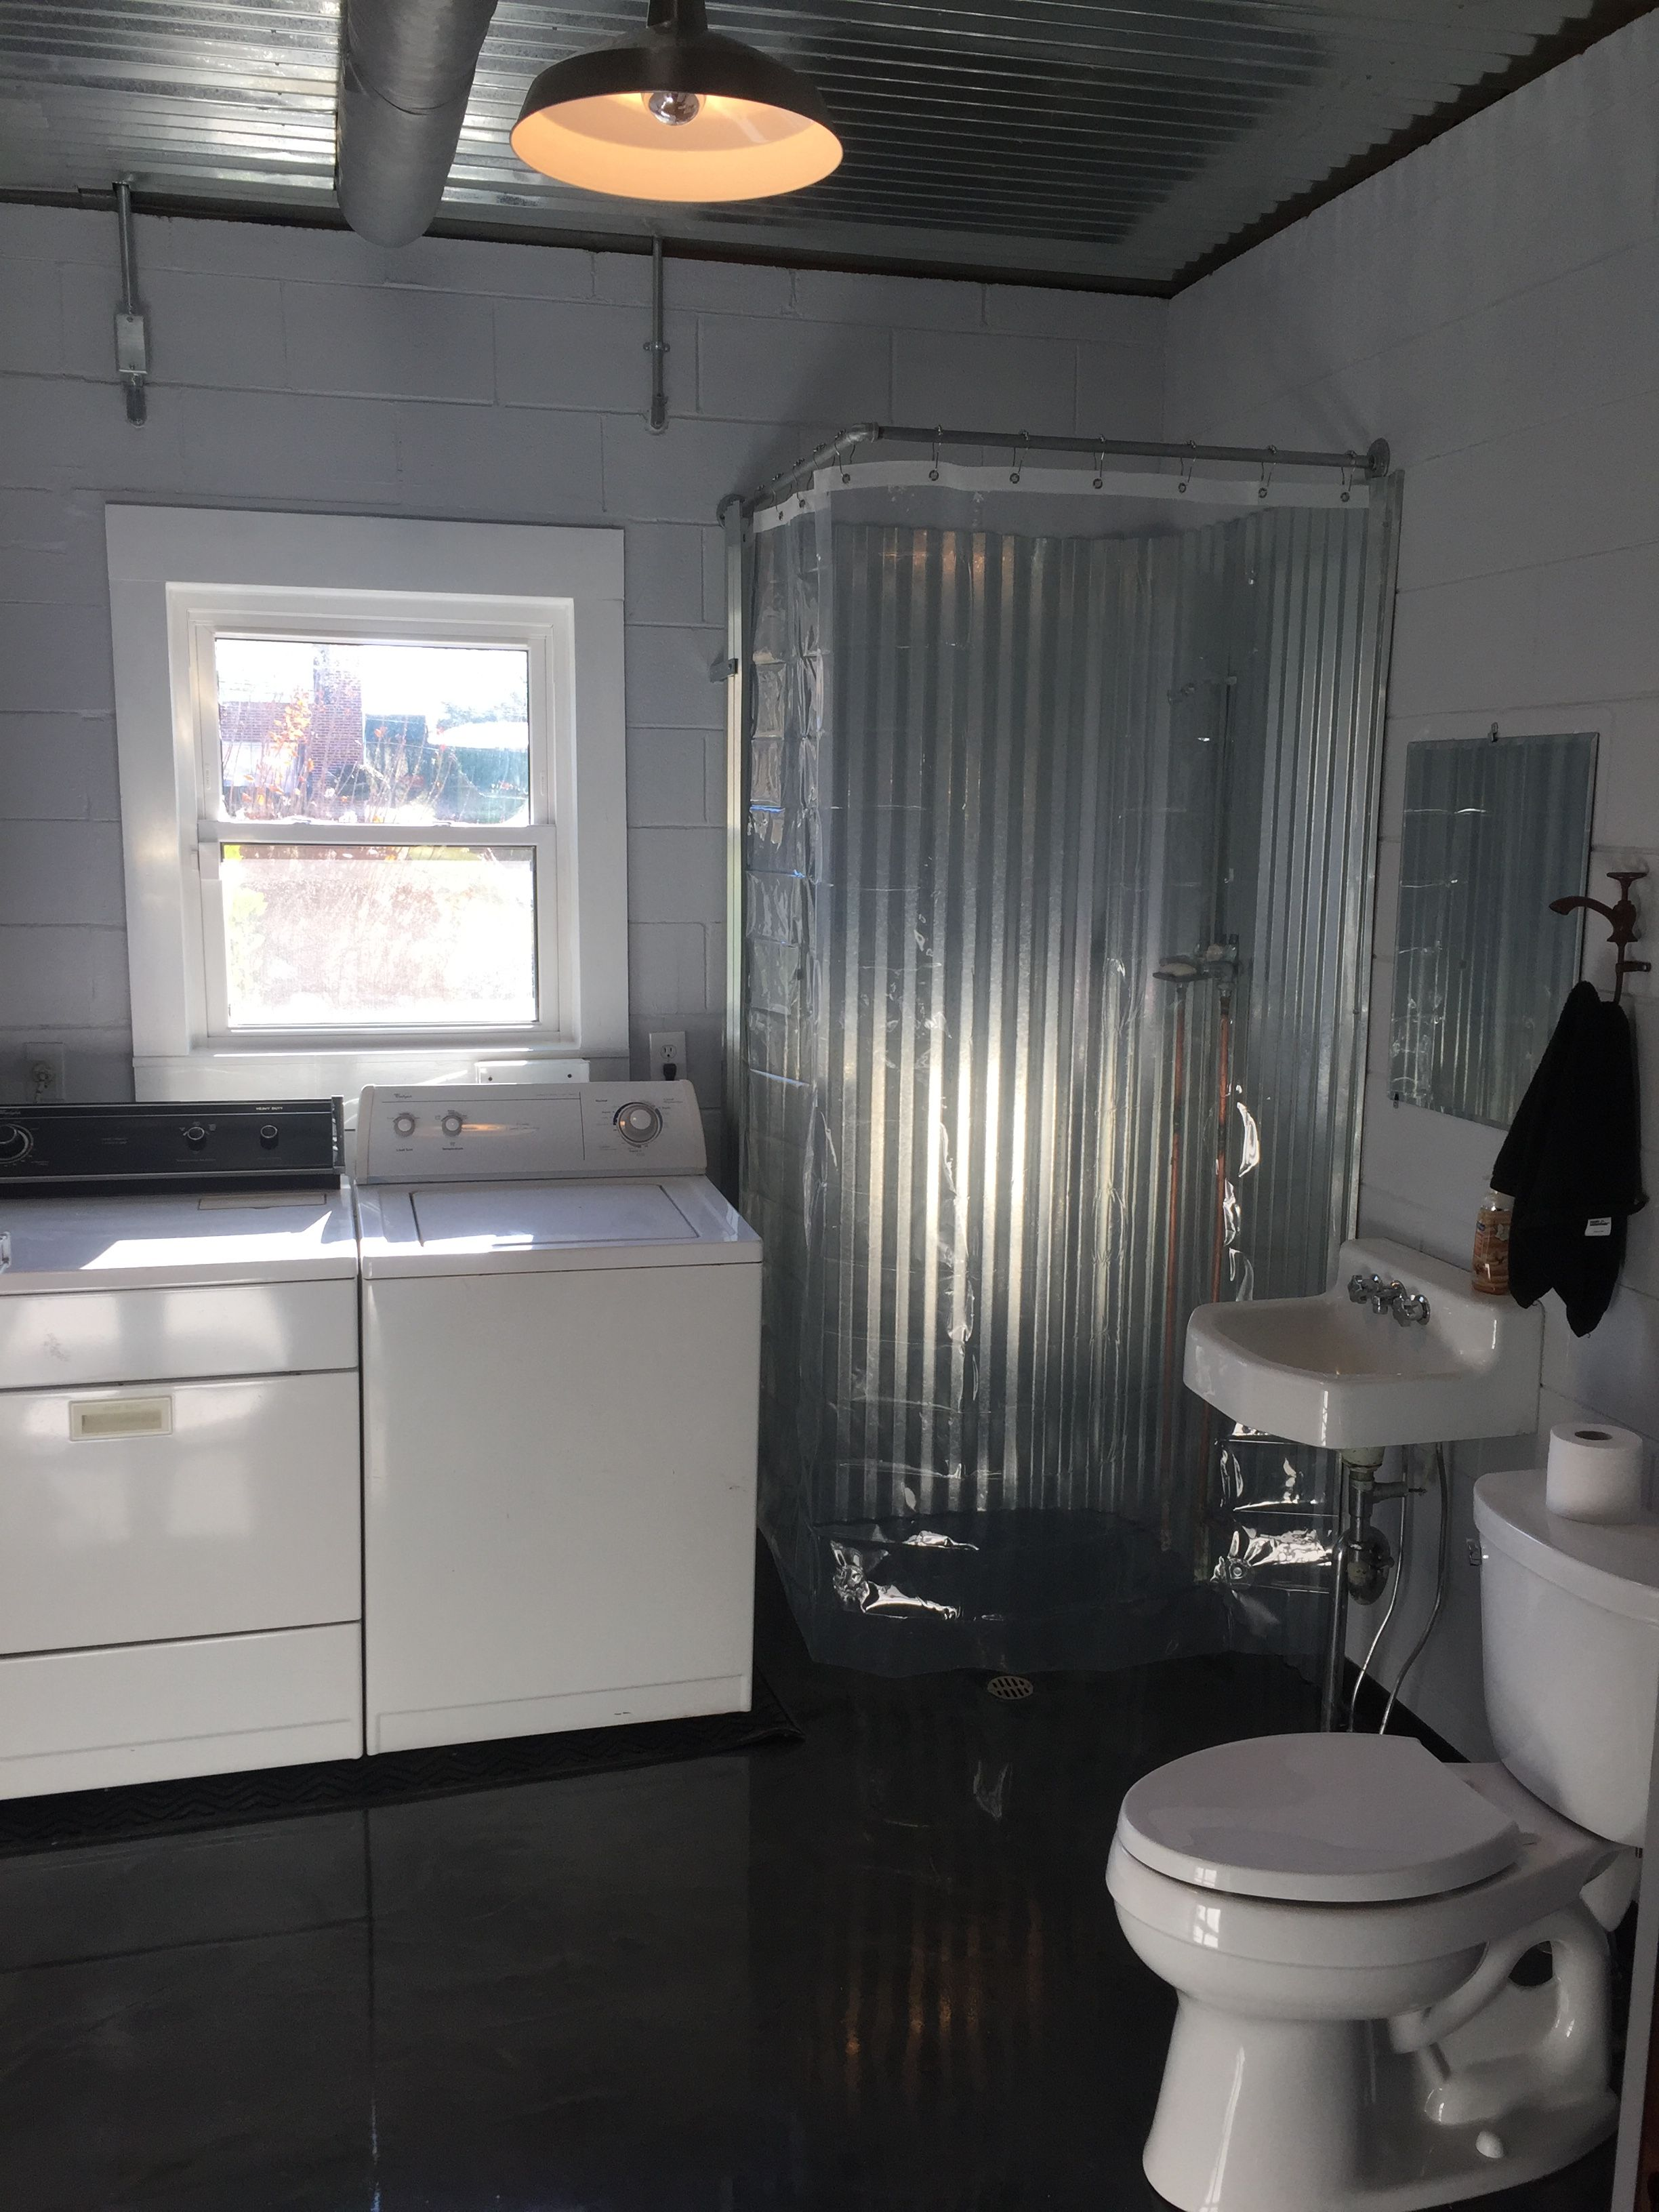 Basement bathroom with corrugated metal surround for shower walls